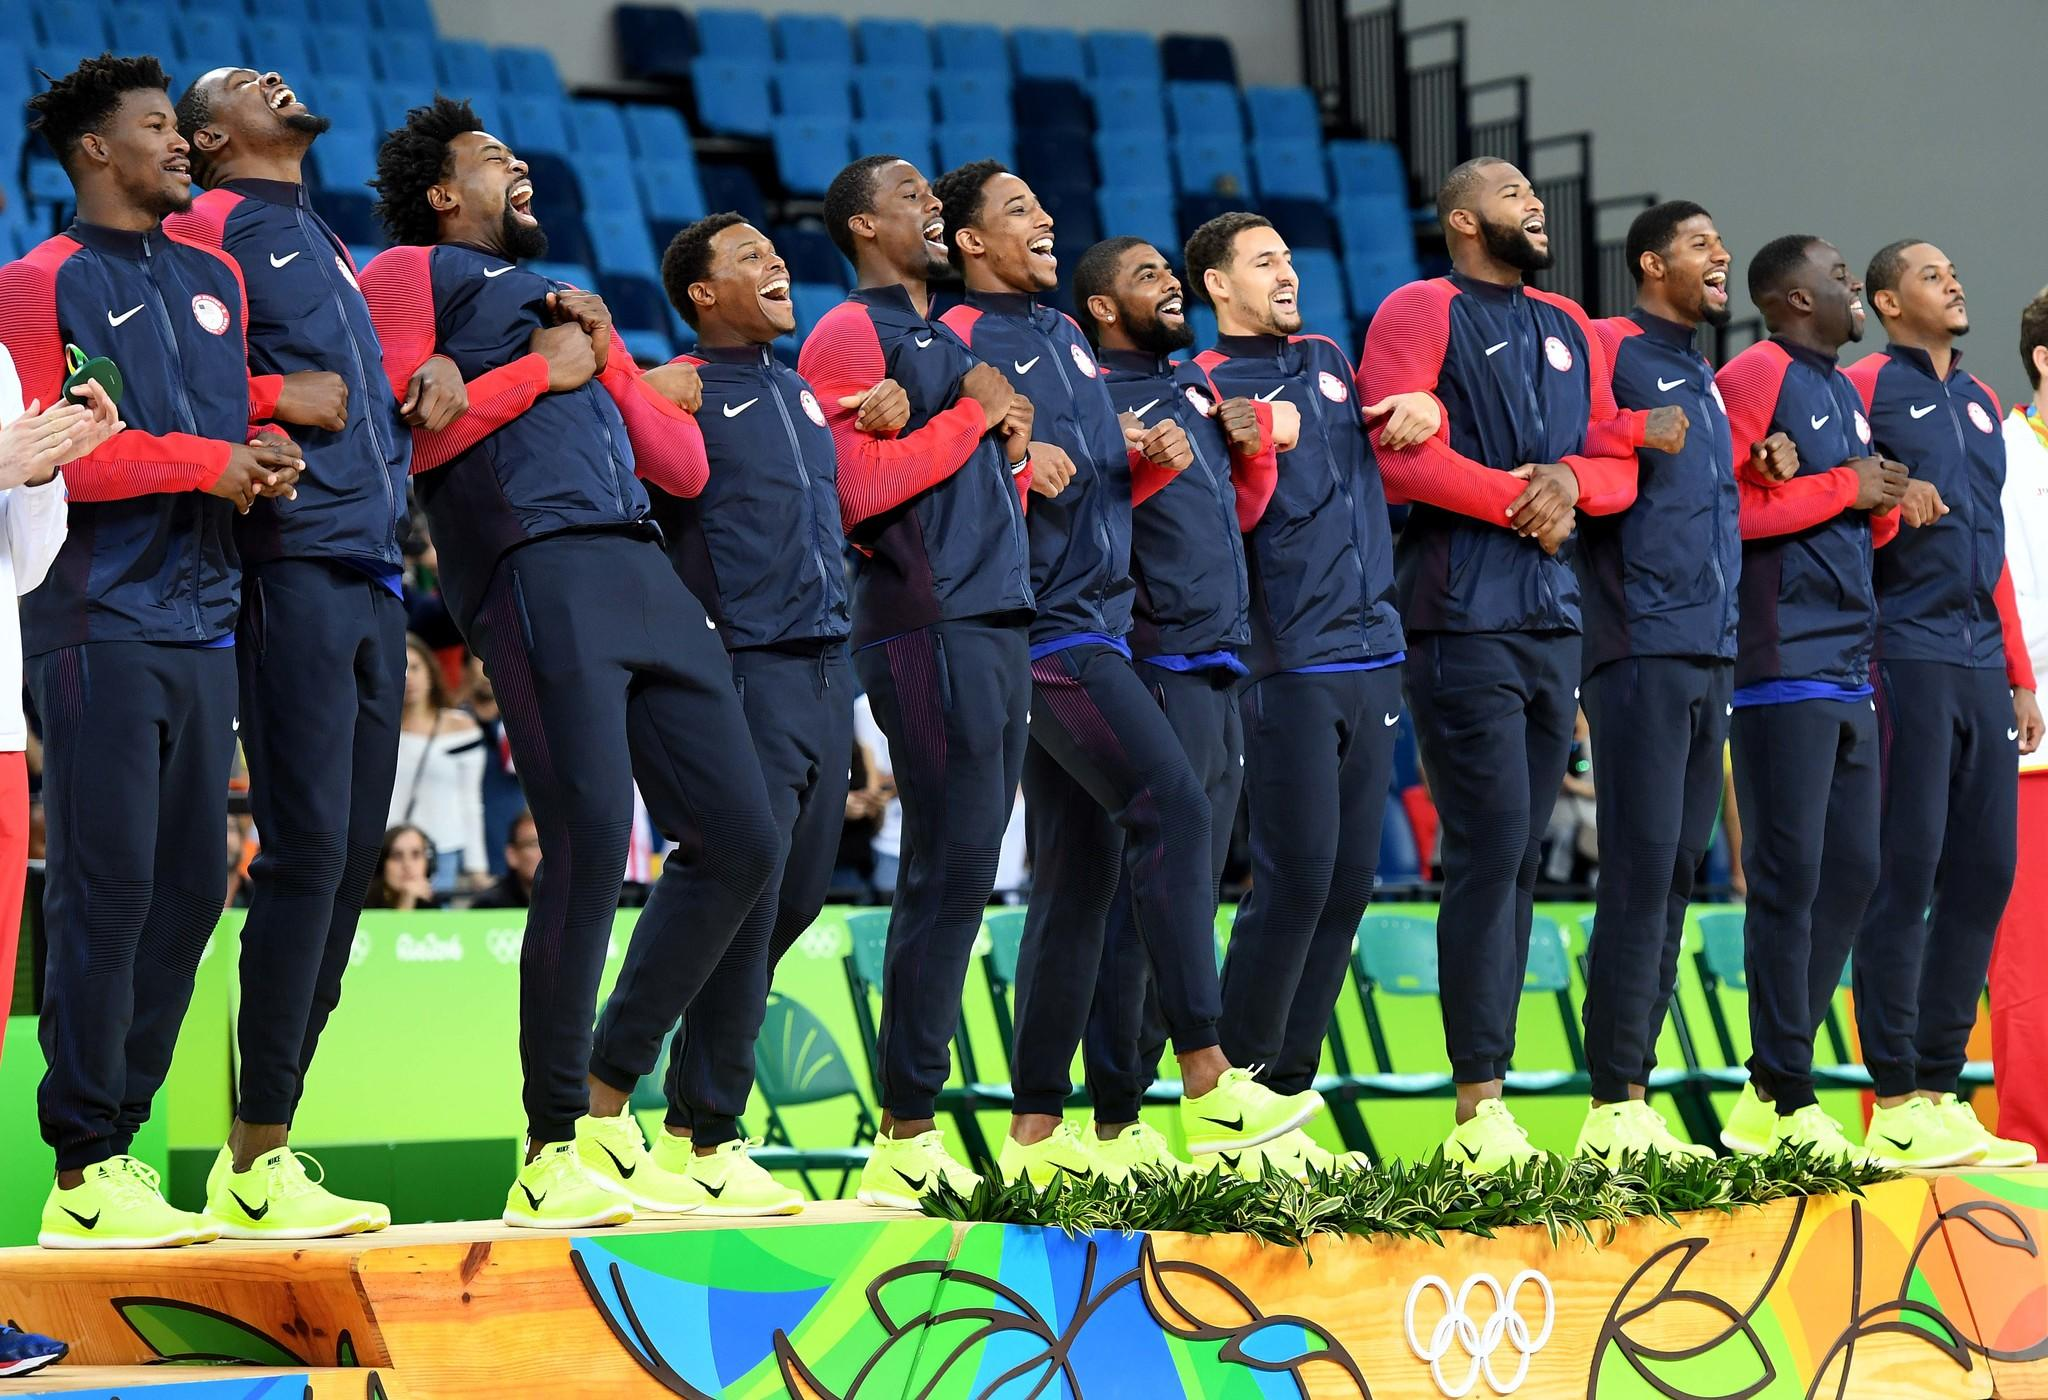 The U.S. men's basketball steps up to podium to receive their gold medals. (Wally Skalij / Los Angeles Times)